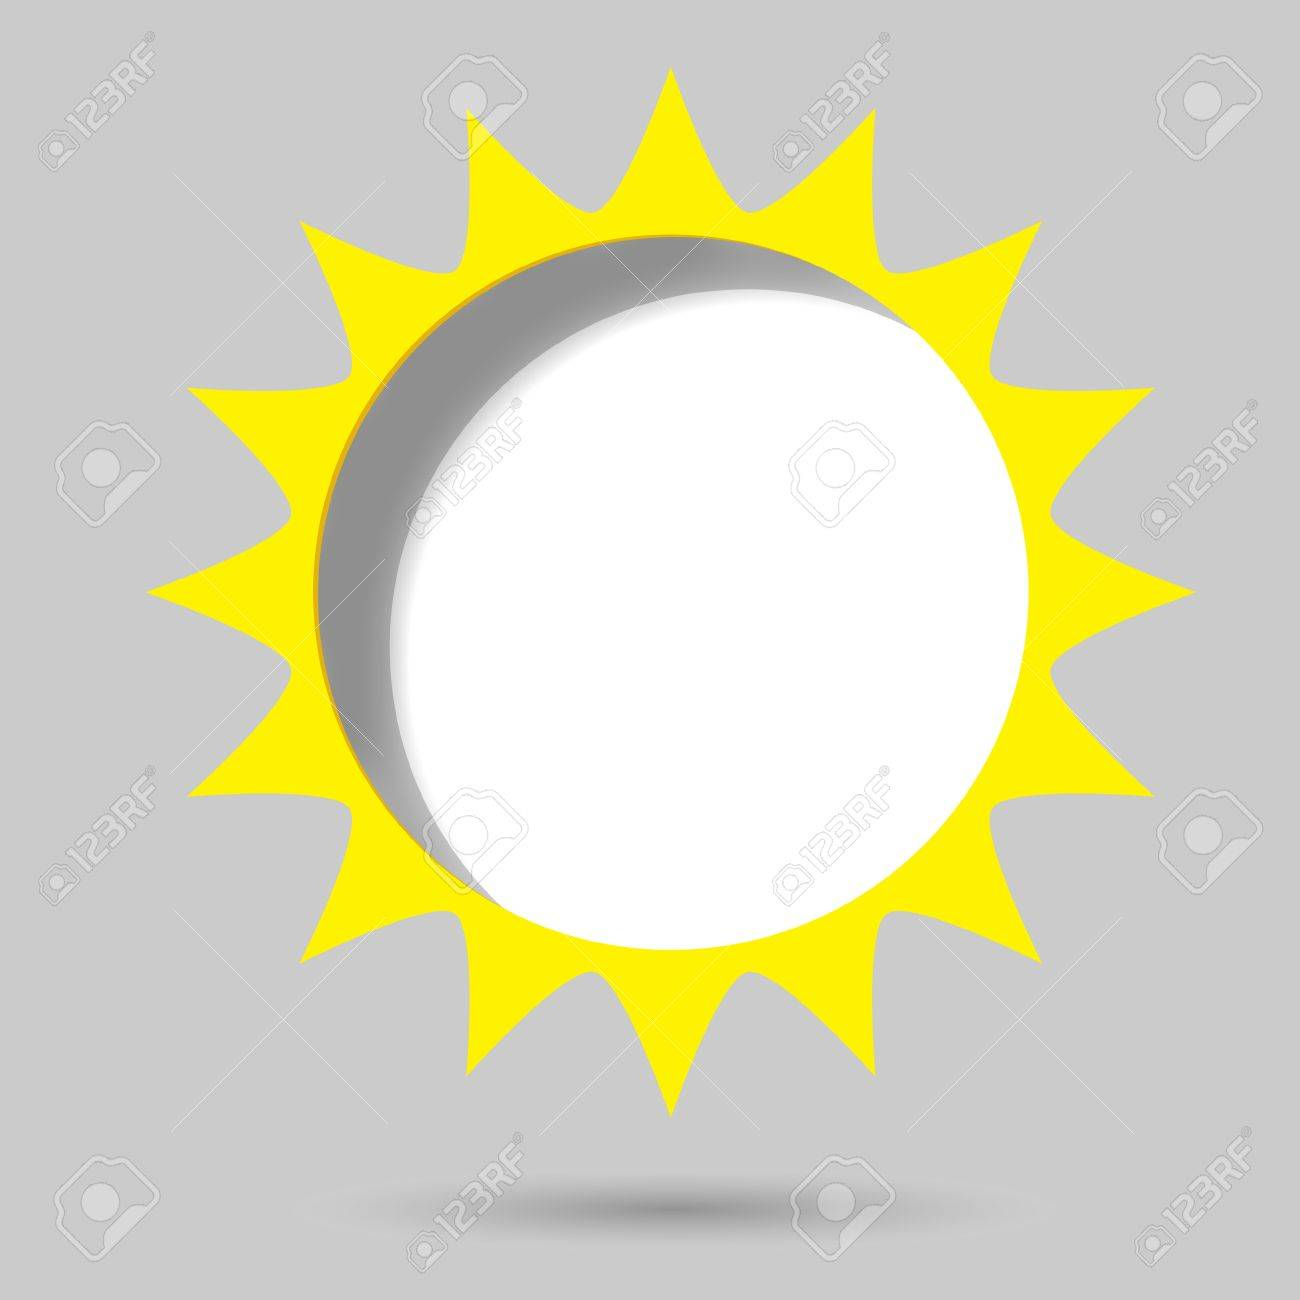 Creative Poster Template Yellow Sun Royalty Free Cliparts, Vectors ...